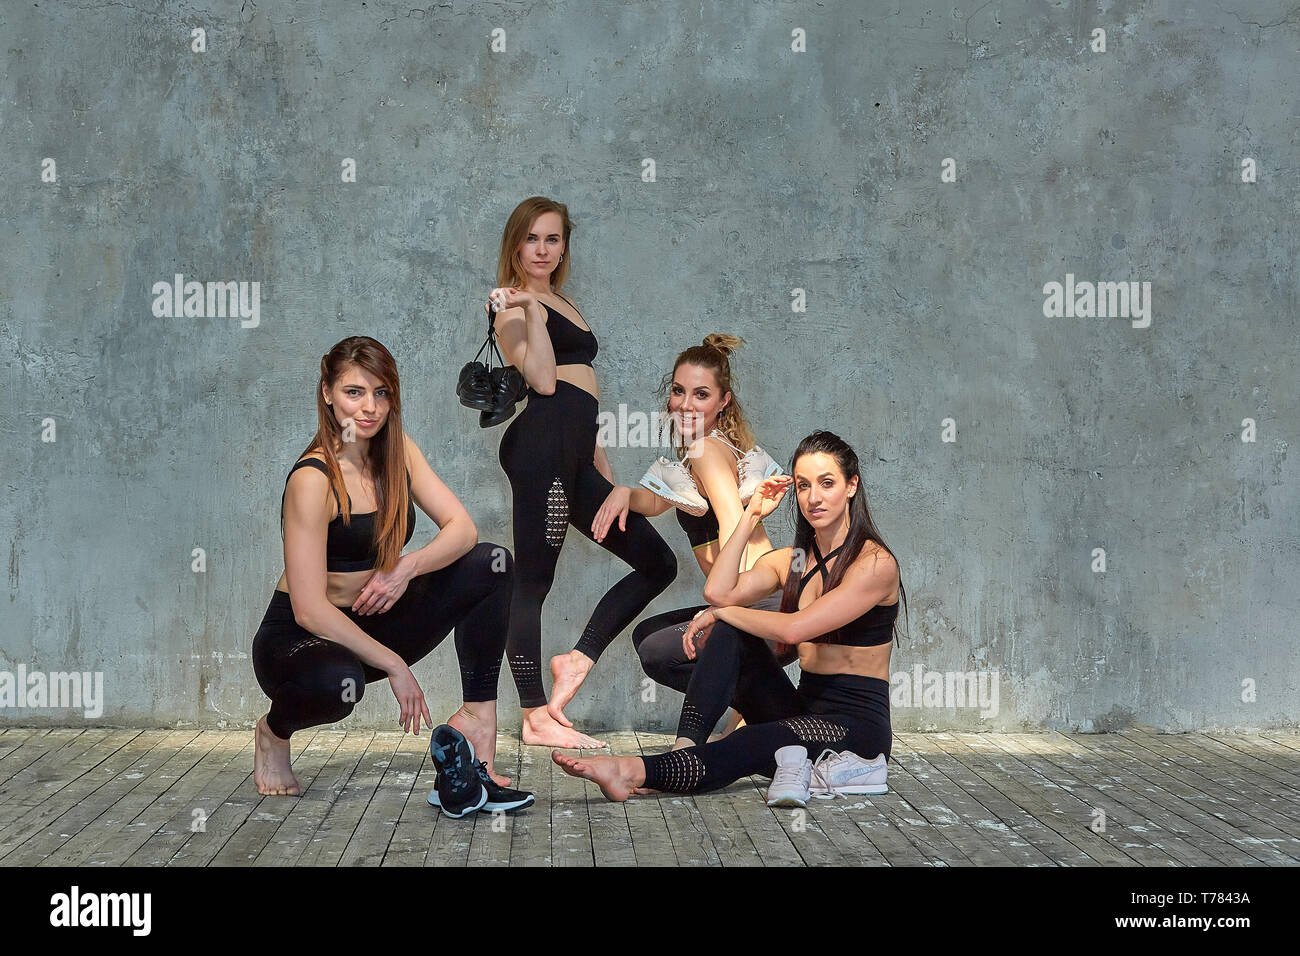 Group portrait of young sporty excited beautiful girls with exercise mats standing beside white wall laughing and talking together. Candid funny Stock Photo